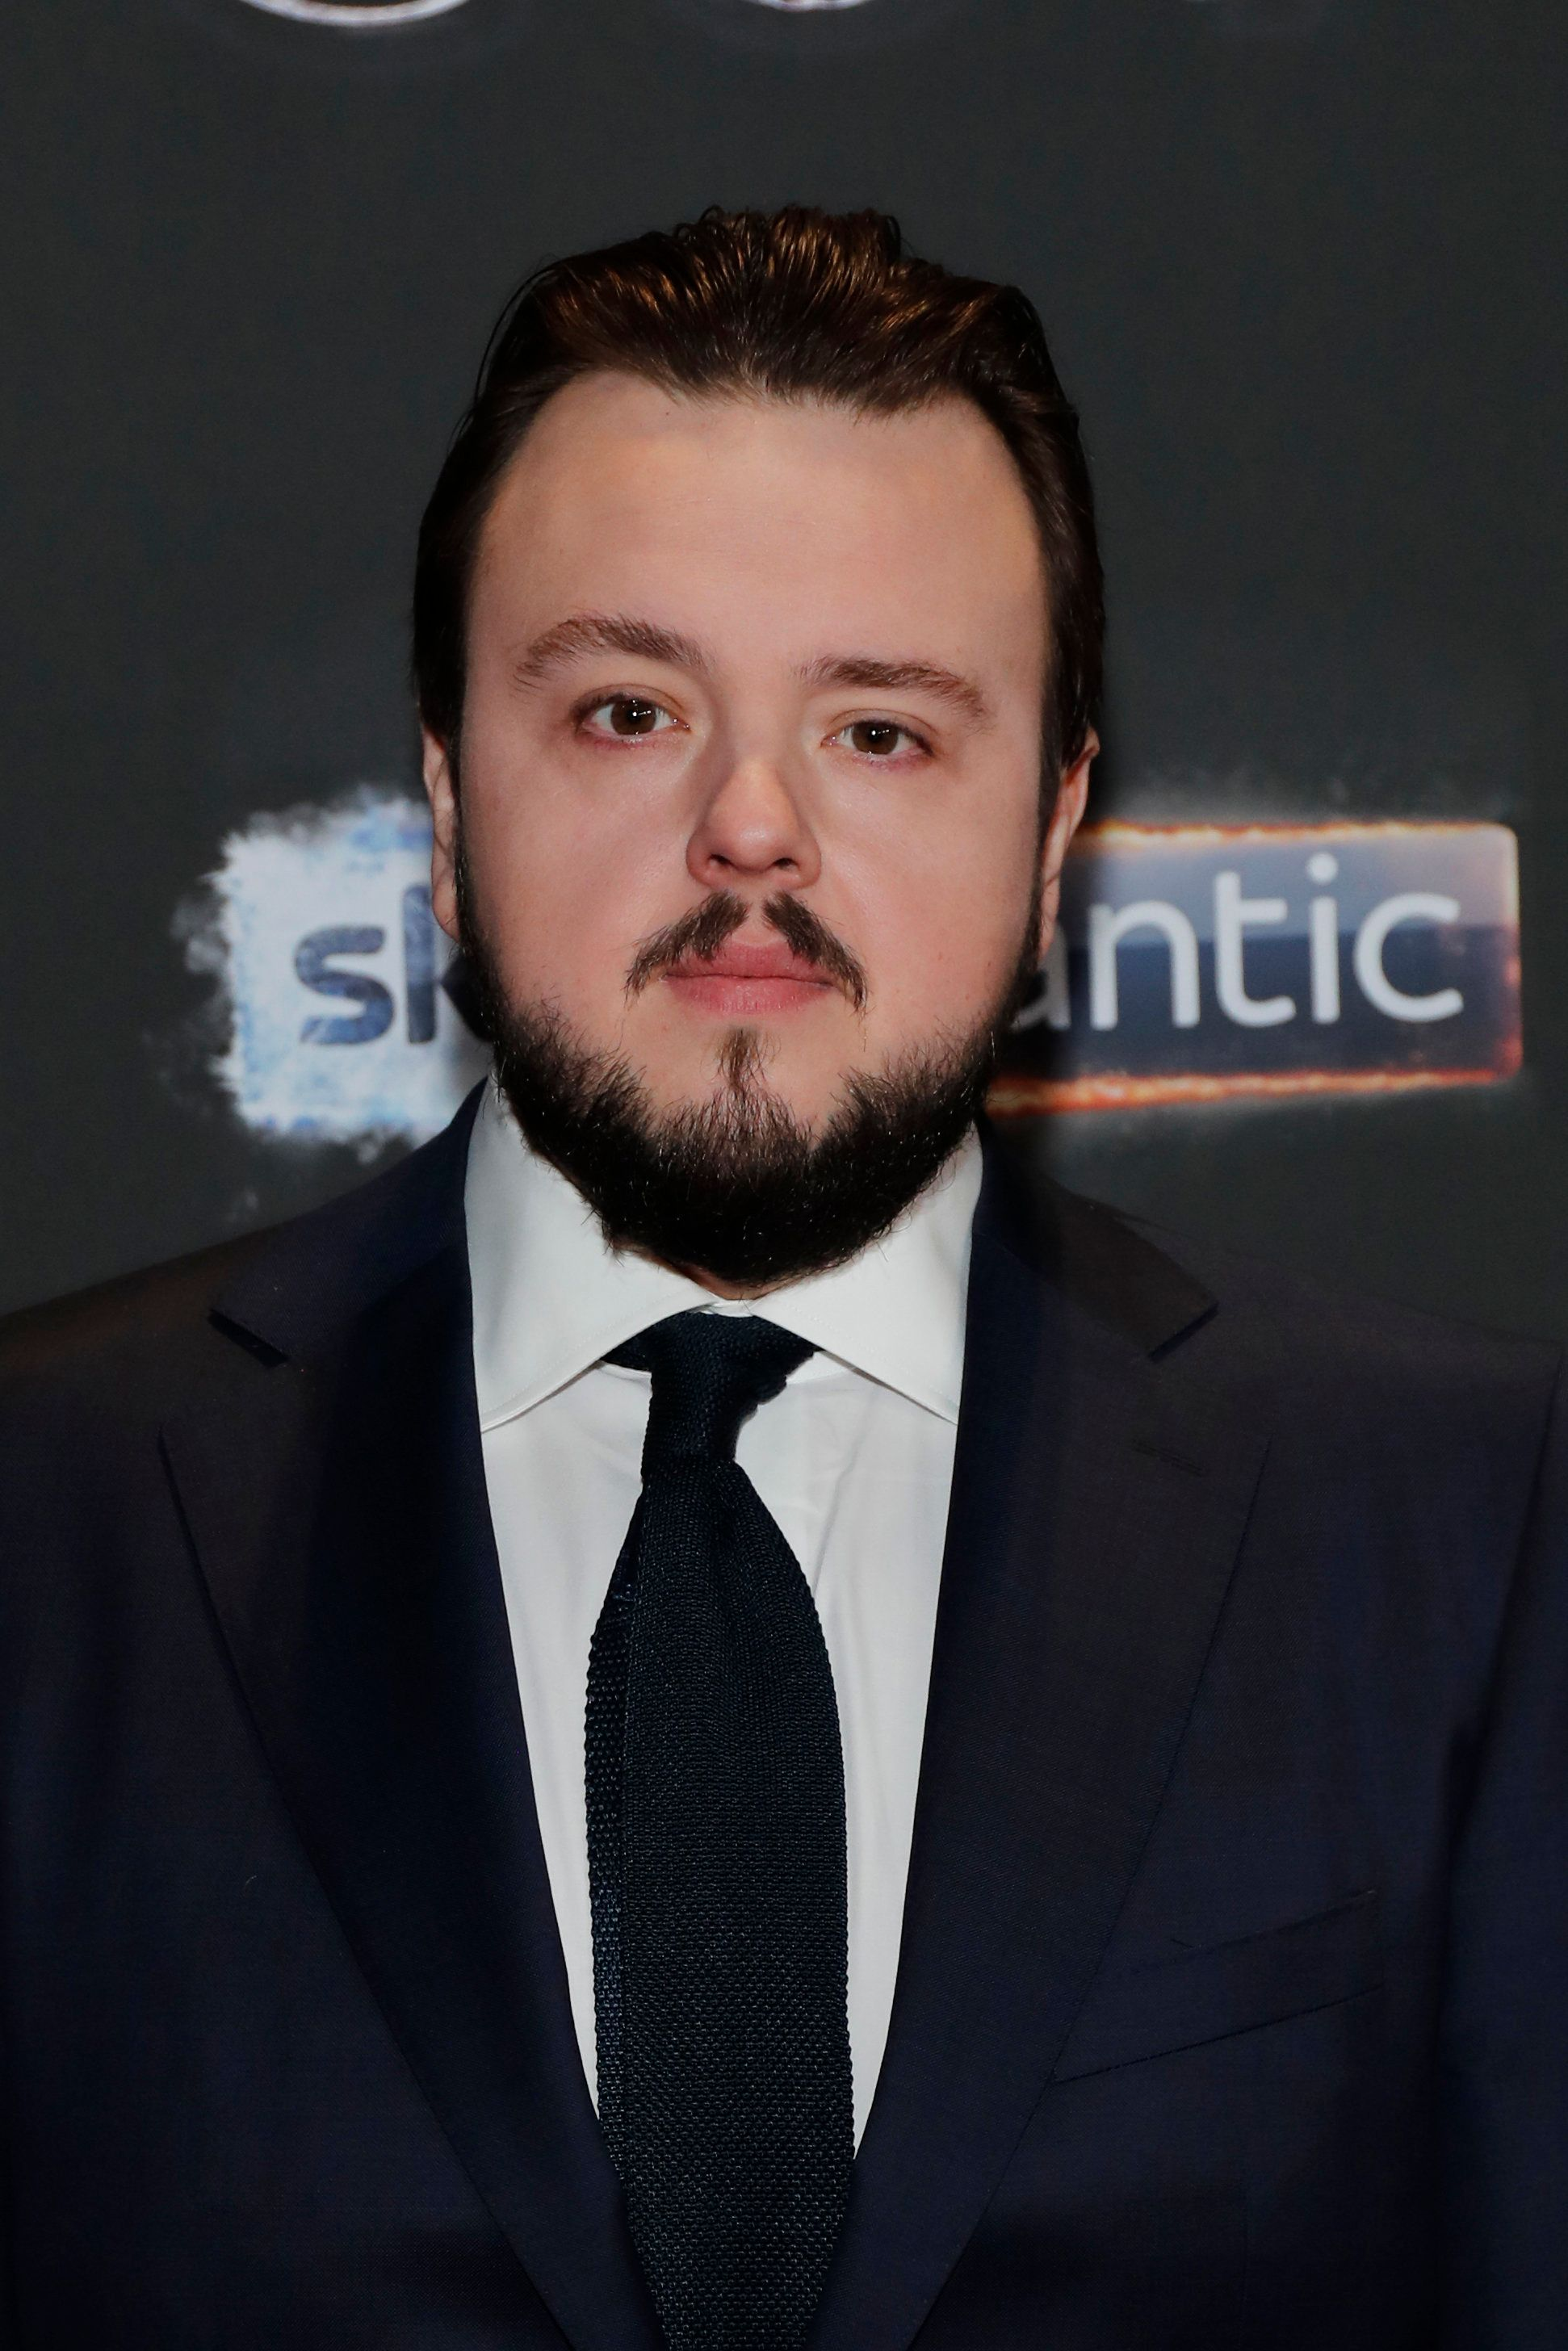 BELFAST, NORTHERN IRELAND - APRIL 12: John Bradley attends the Sky Atlantic 'Game of Thrones' Season 8 premiere at Waterfront Hall on April 12, 2019 in Belfast, Northern Ireland. (Photo by David M. Benett/Dave Benett/Getty Images for Sky Atlantic UK)